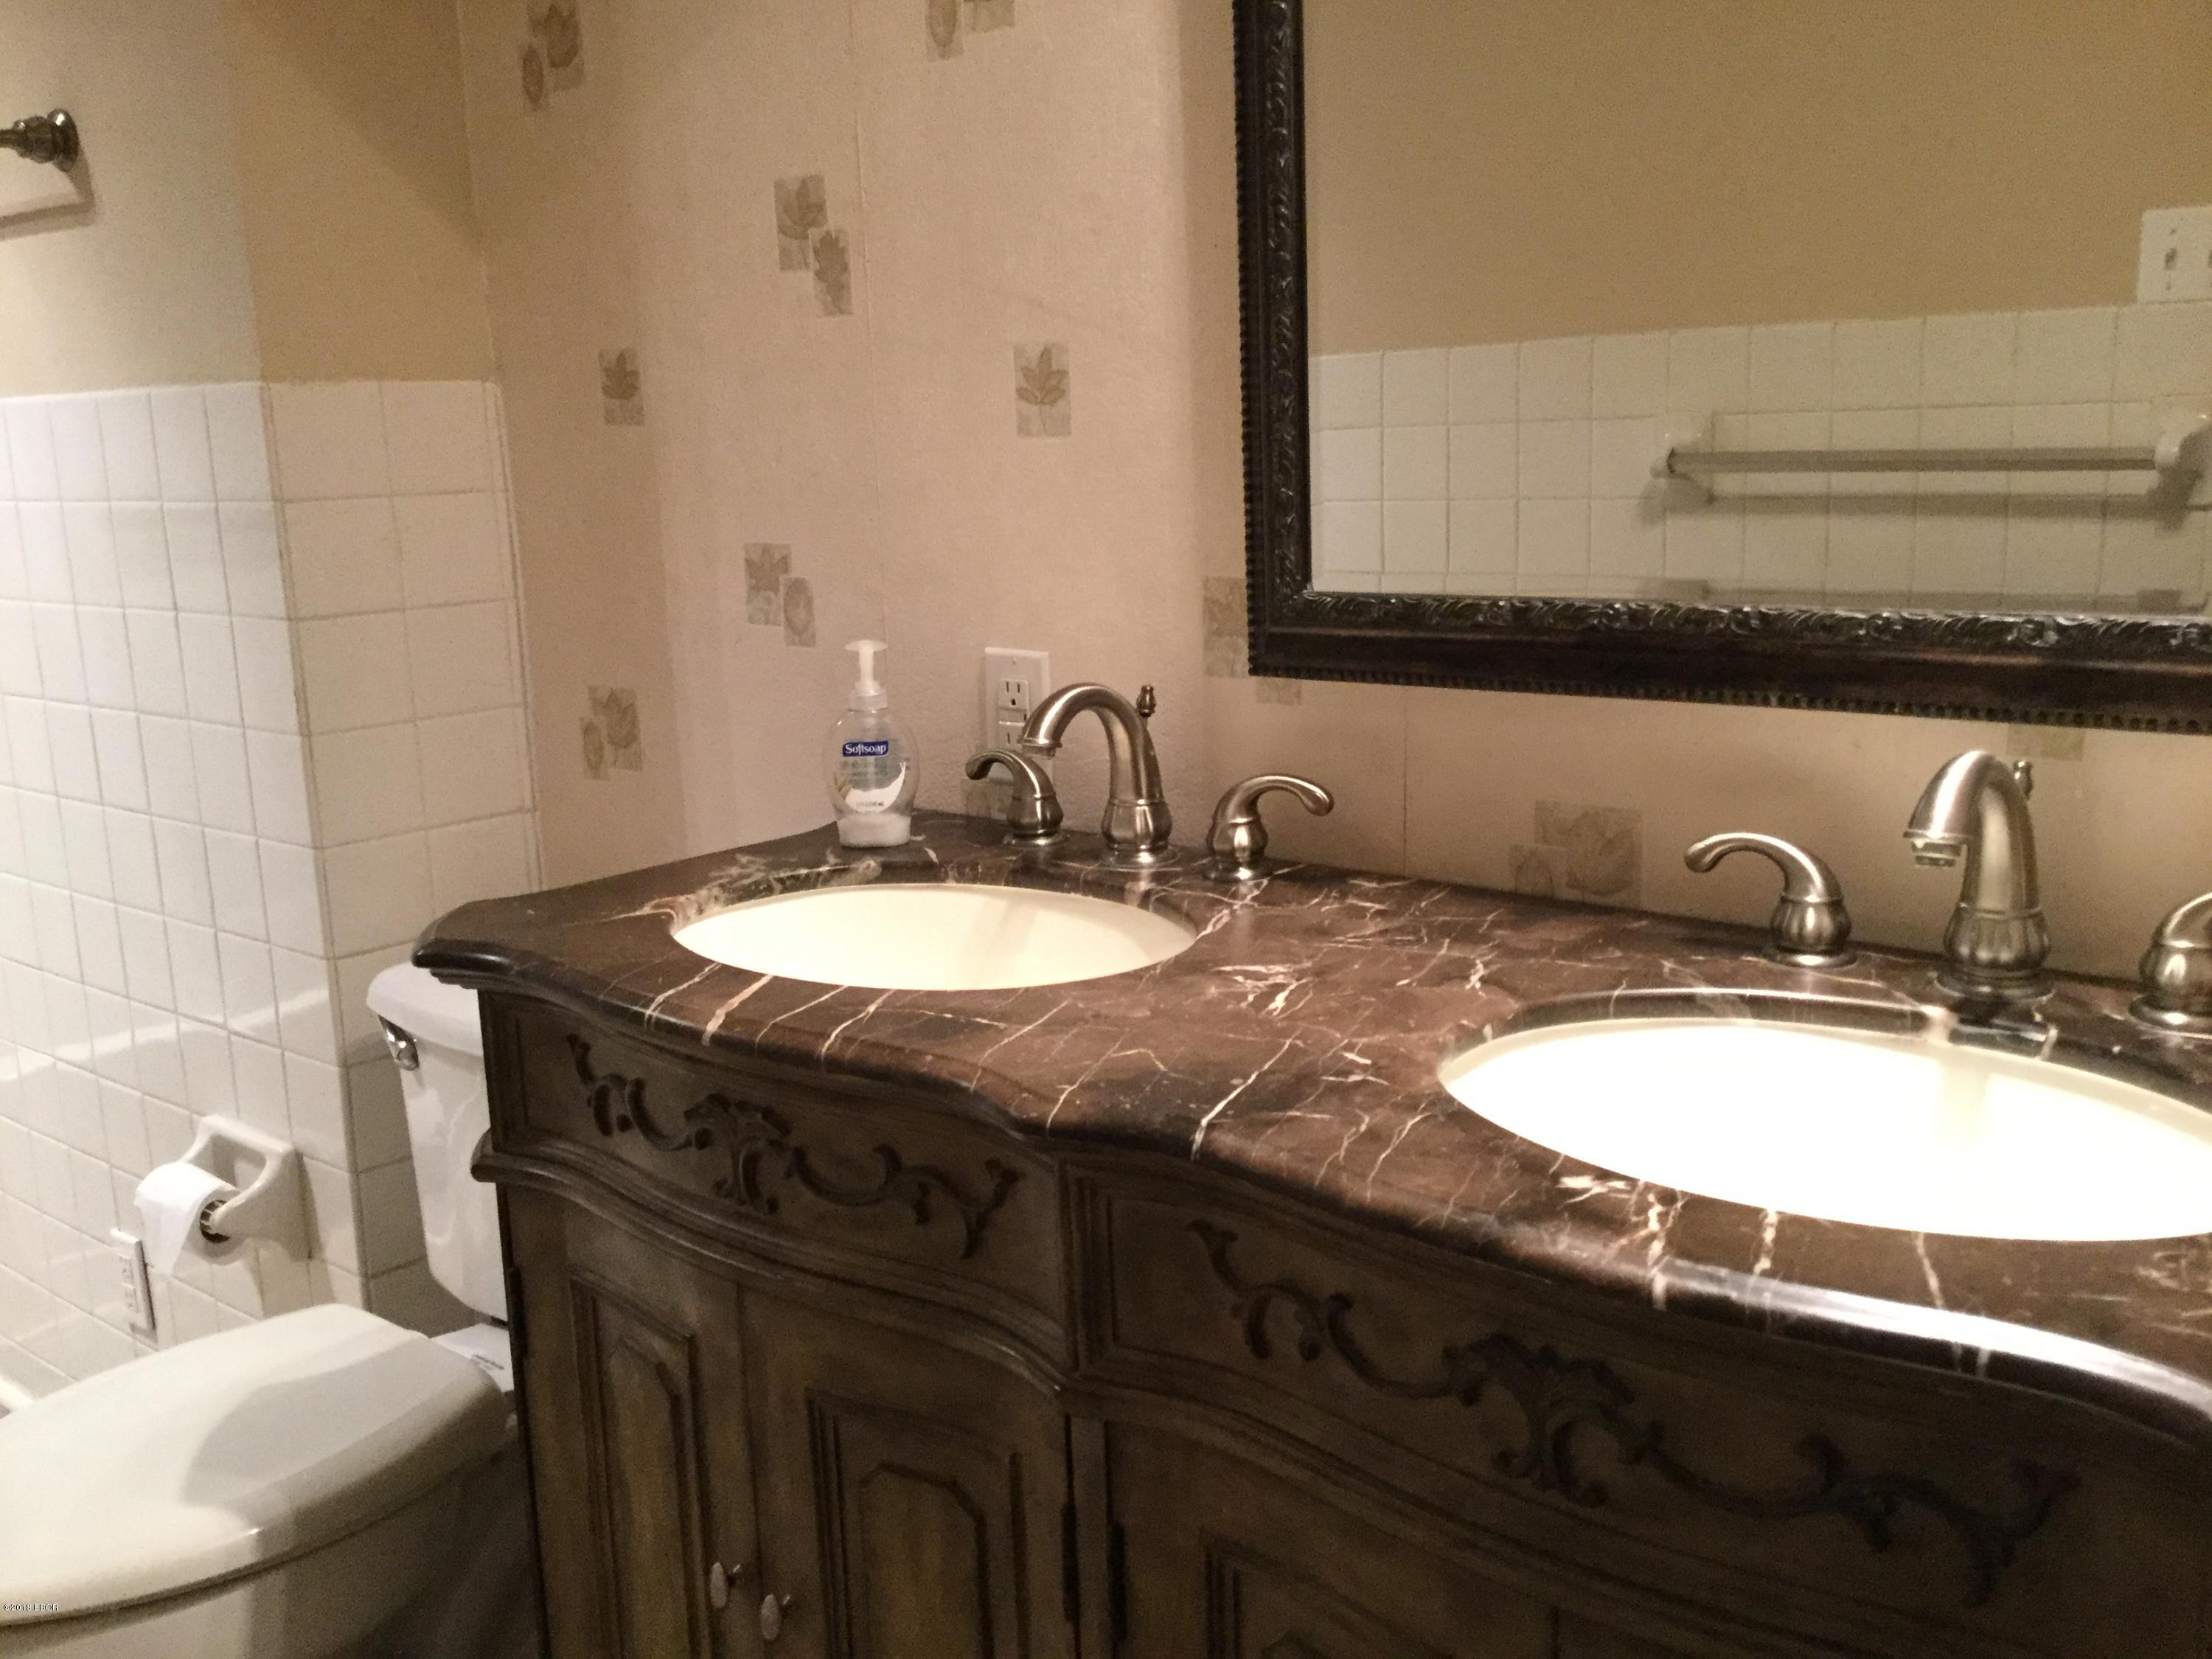 403 Morgan Street Anna Il 62906 Mls 422676 Jeff Dunahee Realty How To Wire A New Bathroom Hardwood Floors In Every Room Fixtures Windows Wiring Appliances Countertops And Just